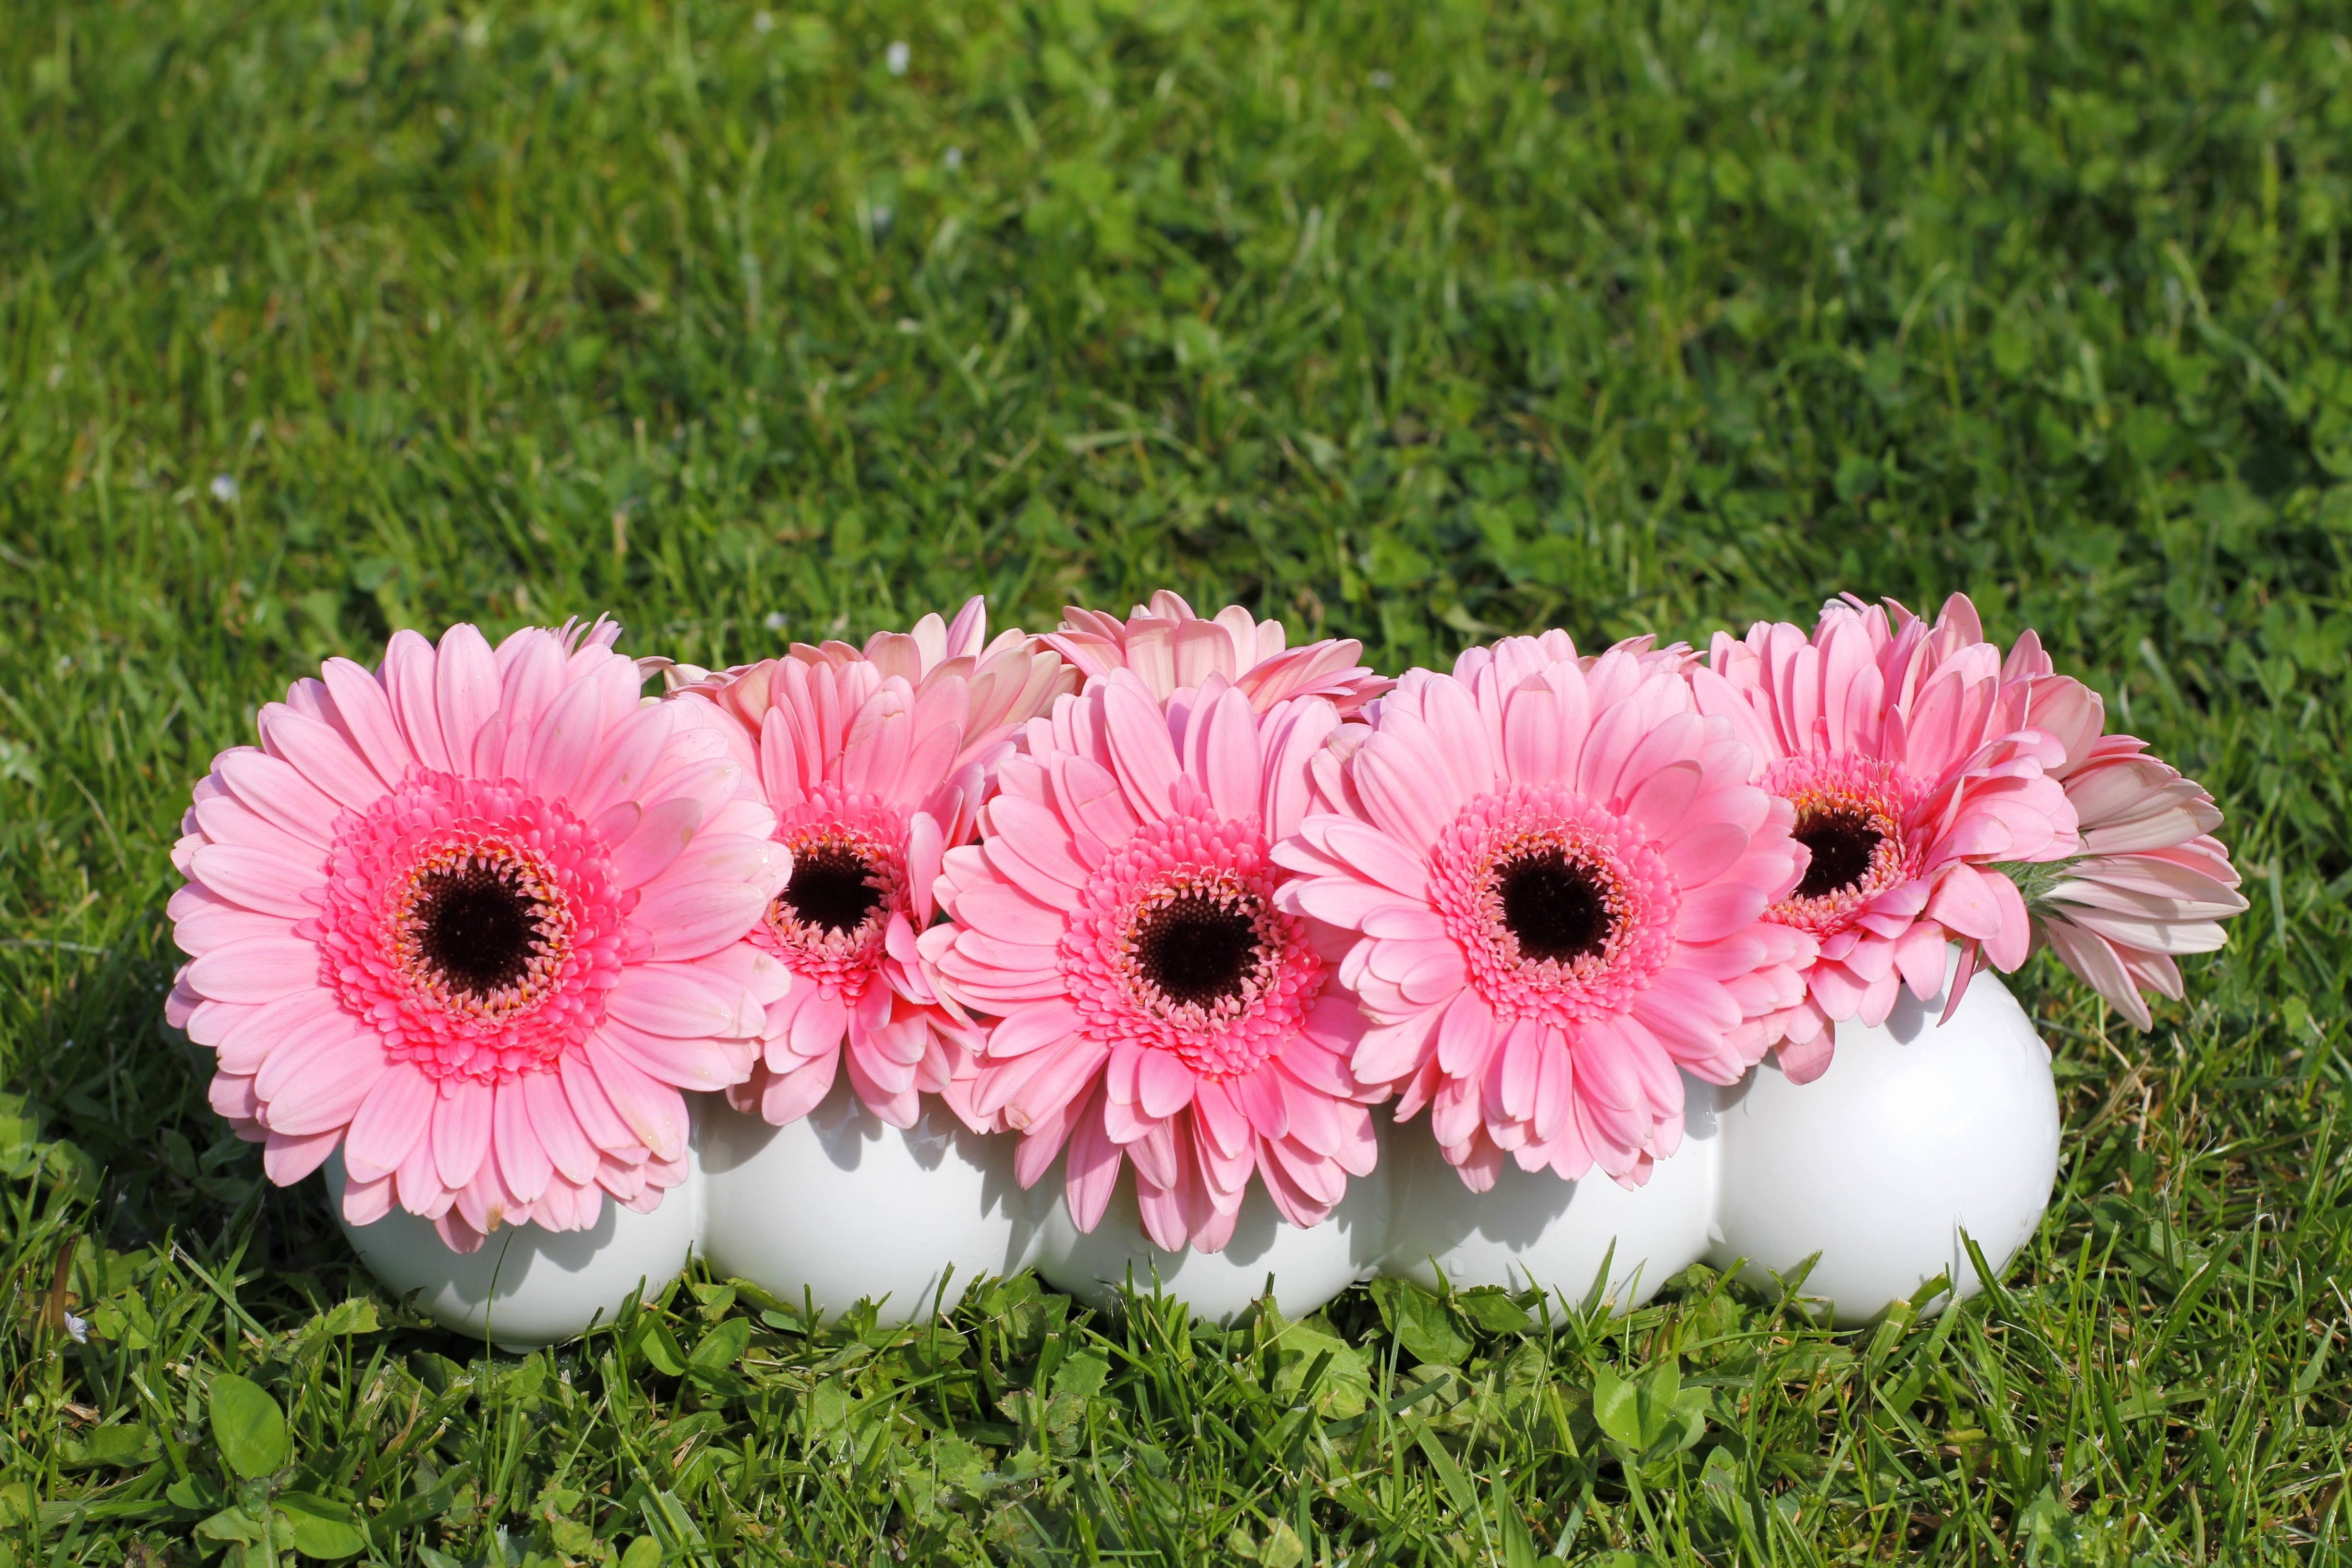 Five Pink Daisy Flowers on White Pot